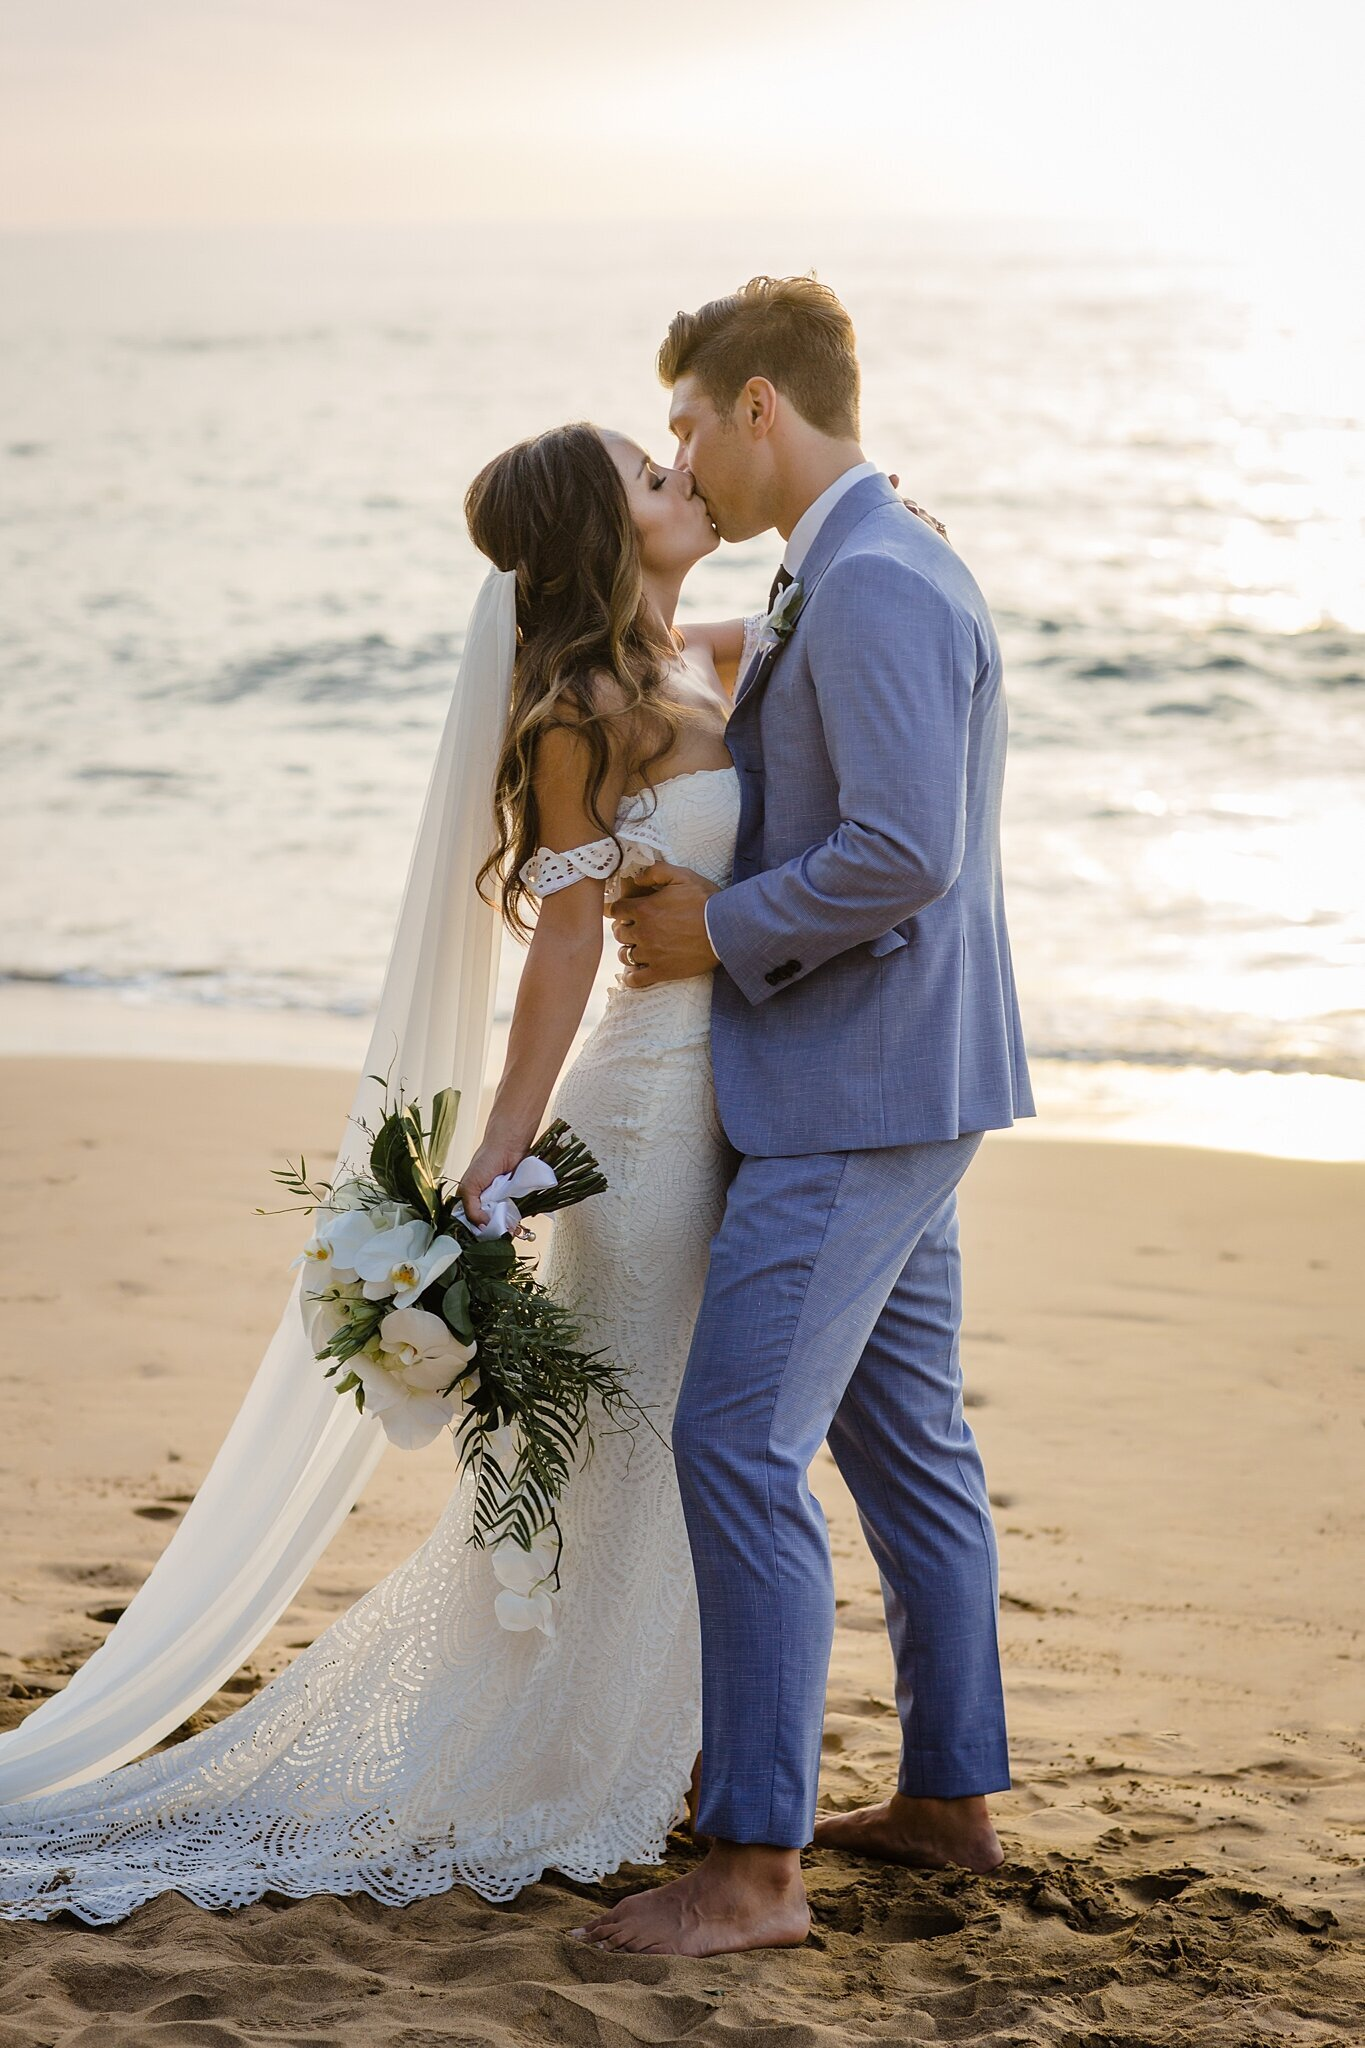 wedding kiss on the beach